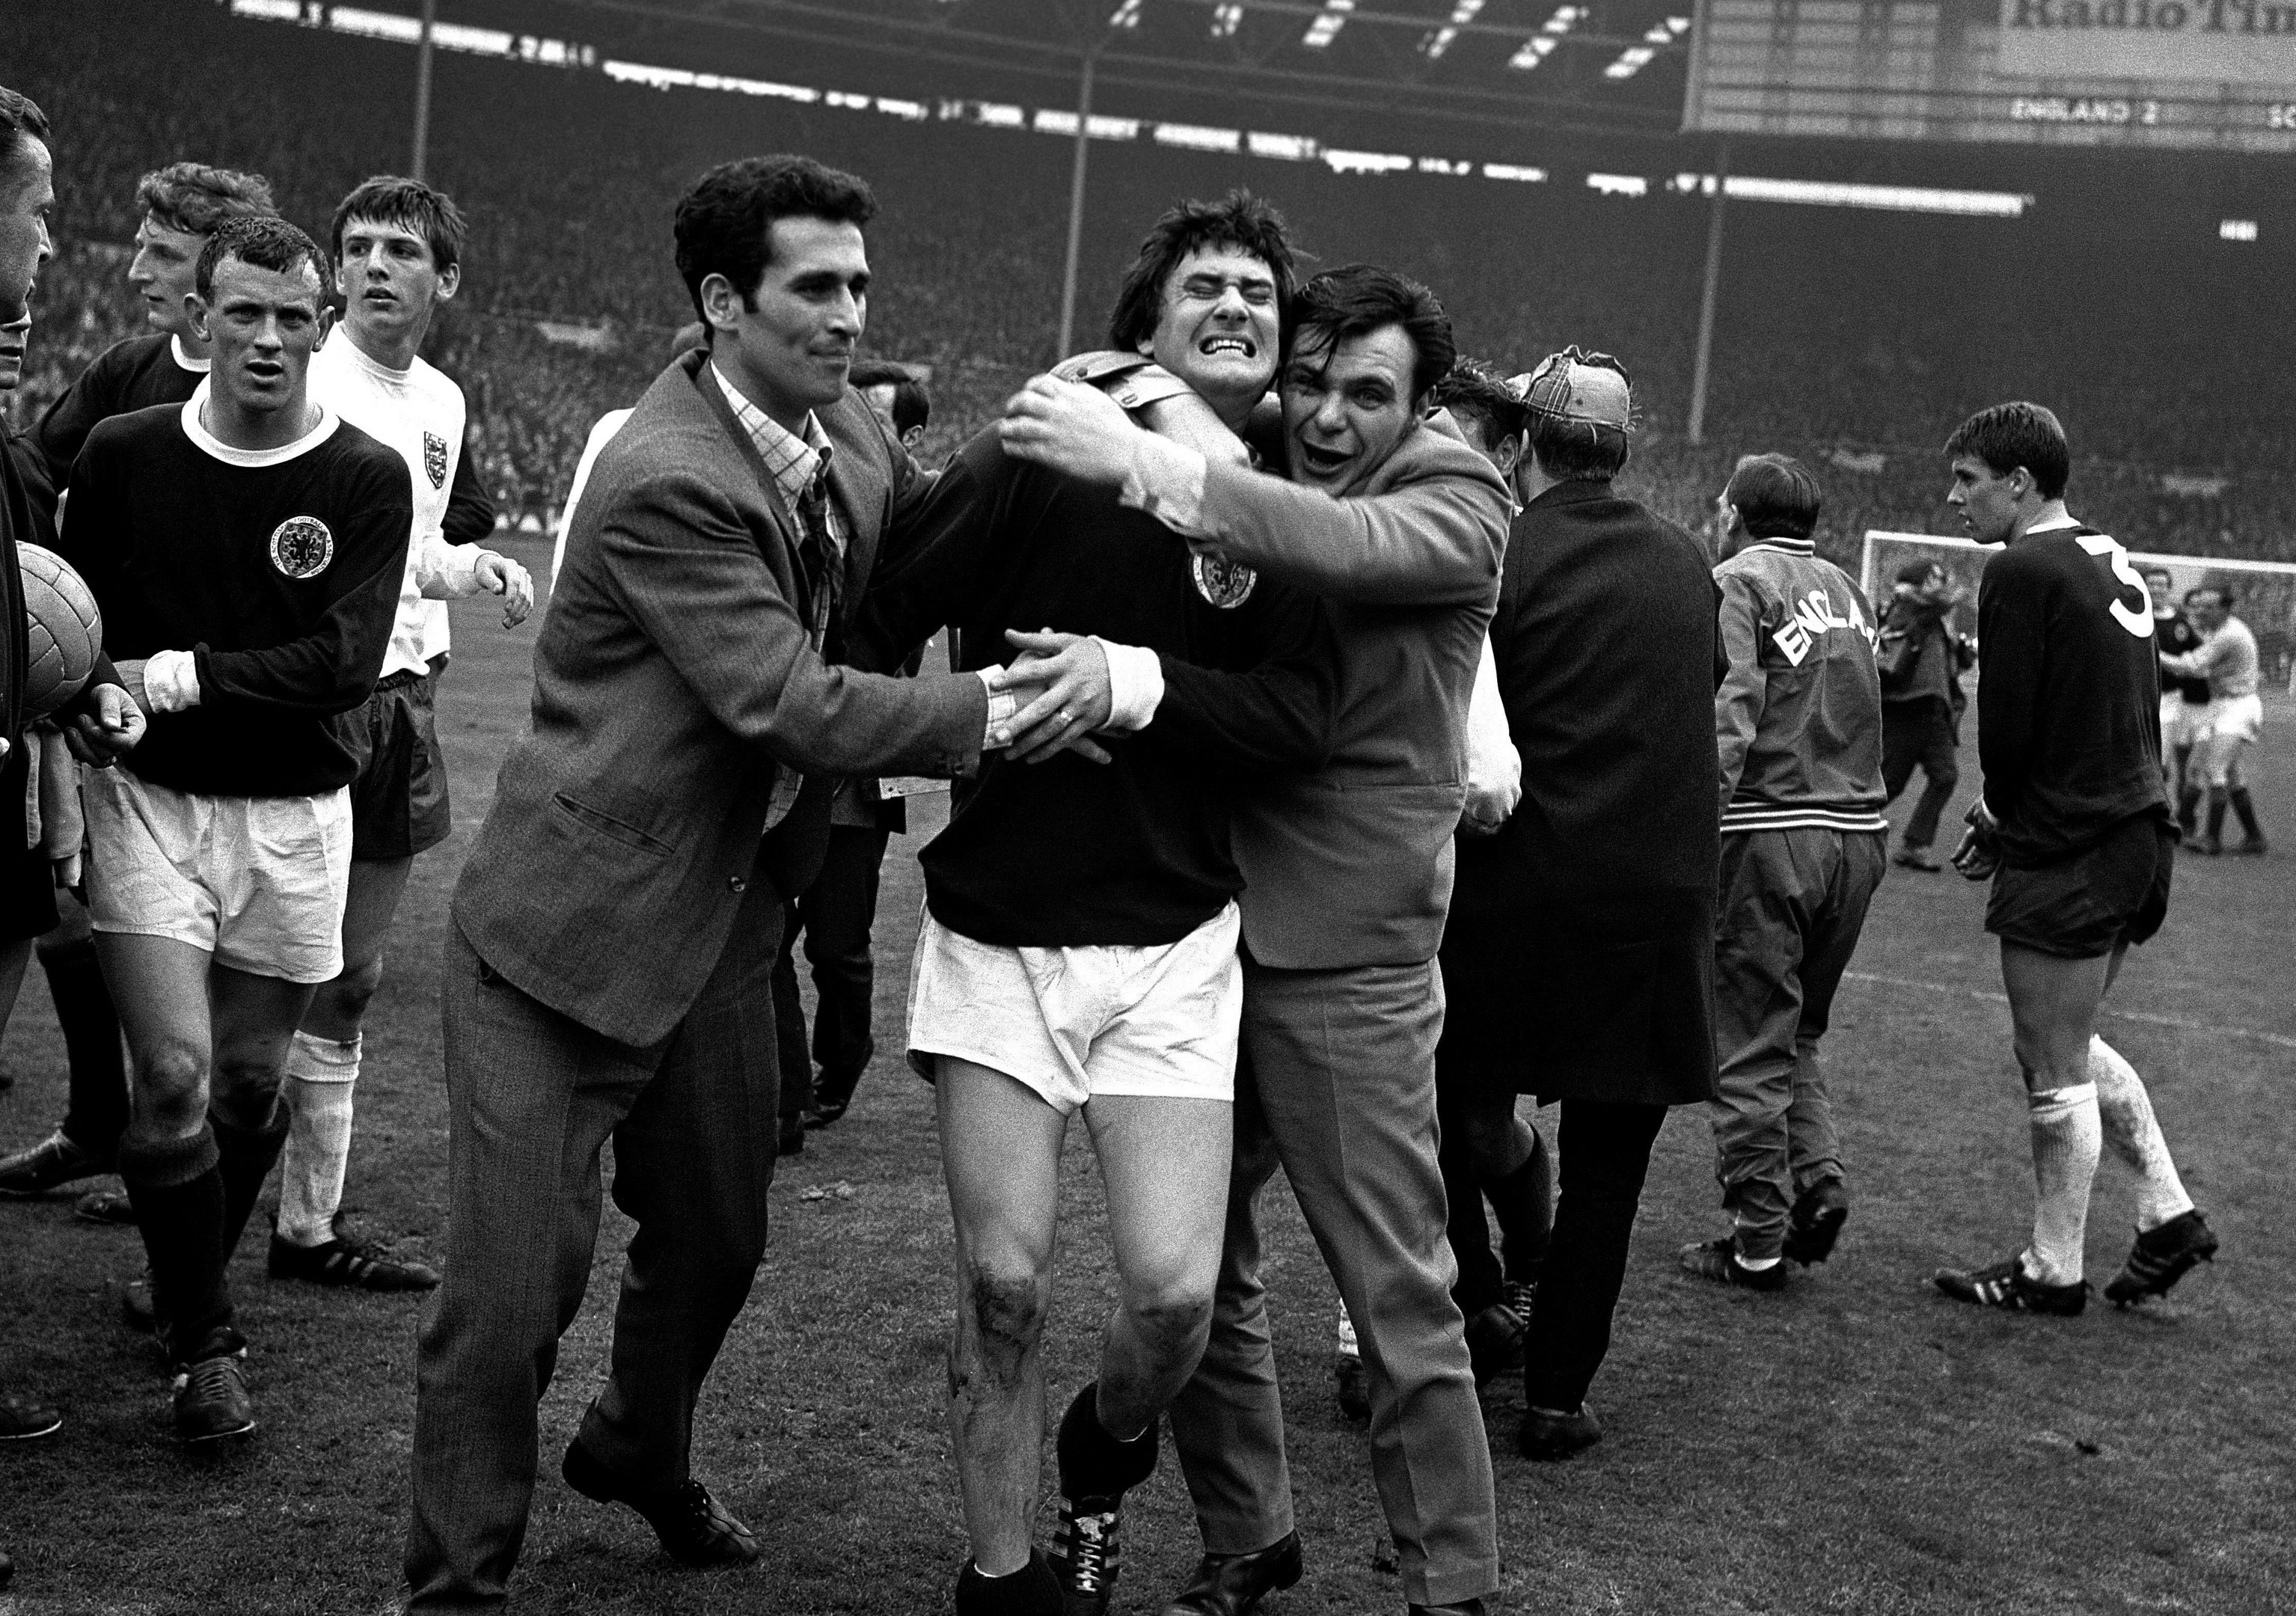 The squeeze makes itself felt for Scotland's Jim Baxter (centre), enthusiastically hugged by overjoyed fans who invaded the Wembley Stadium pitch after England had been beaten 3-2 in their football match against Scotland on April 15, 1967